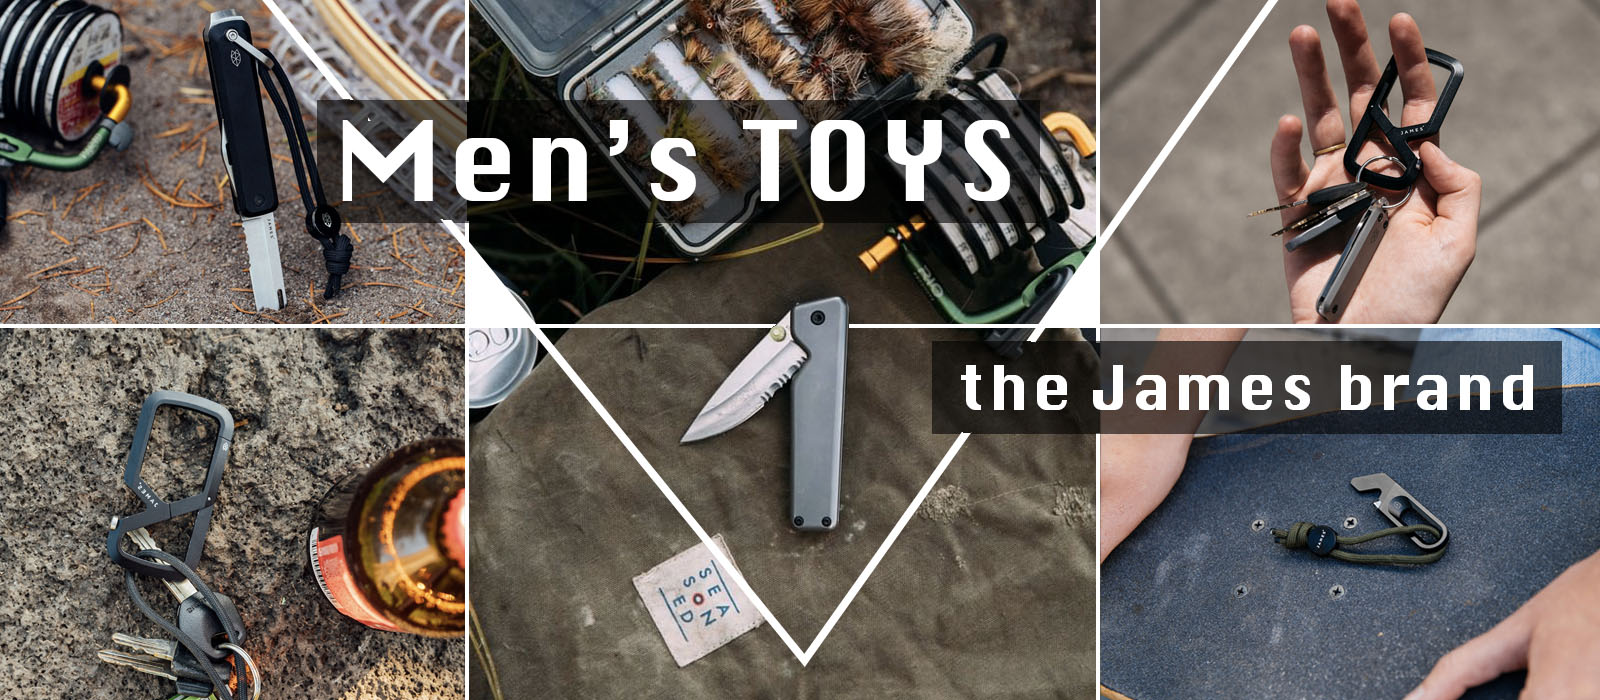 Men's toys: awesome accessories from The James Brand